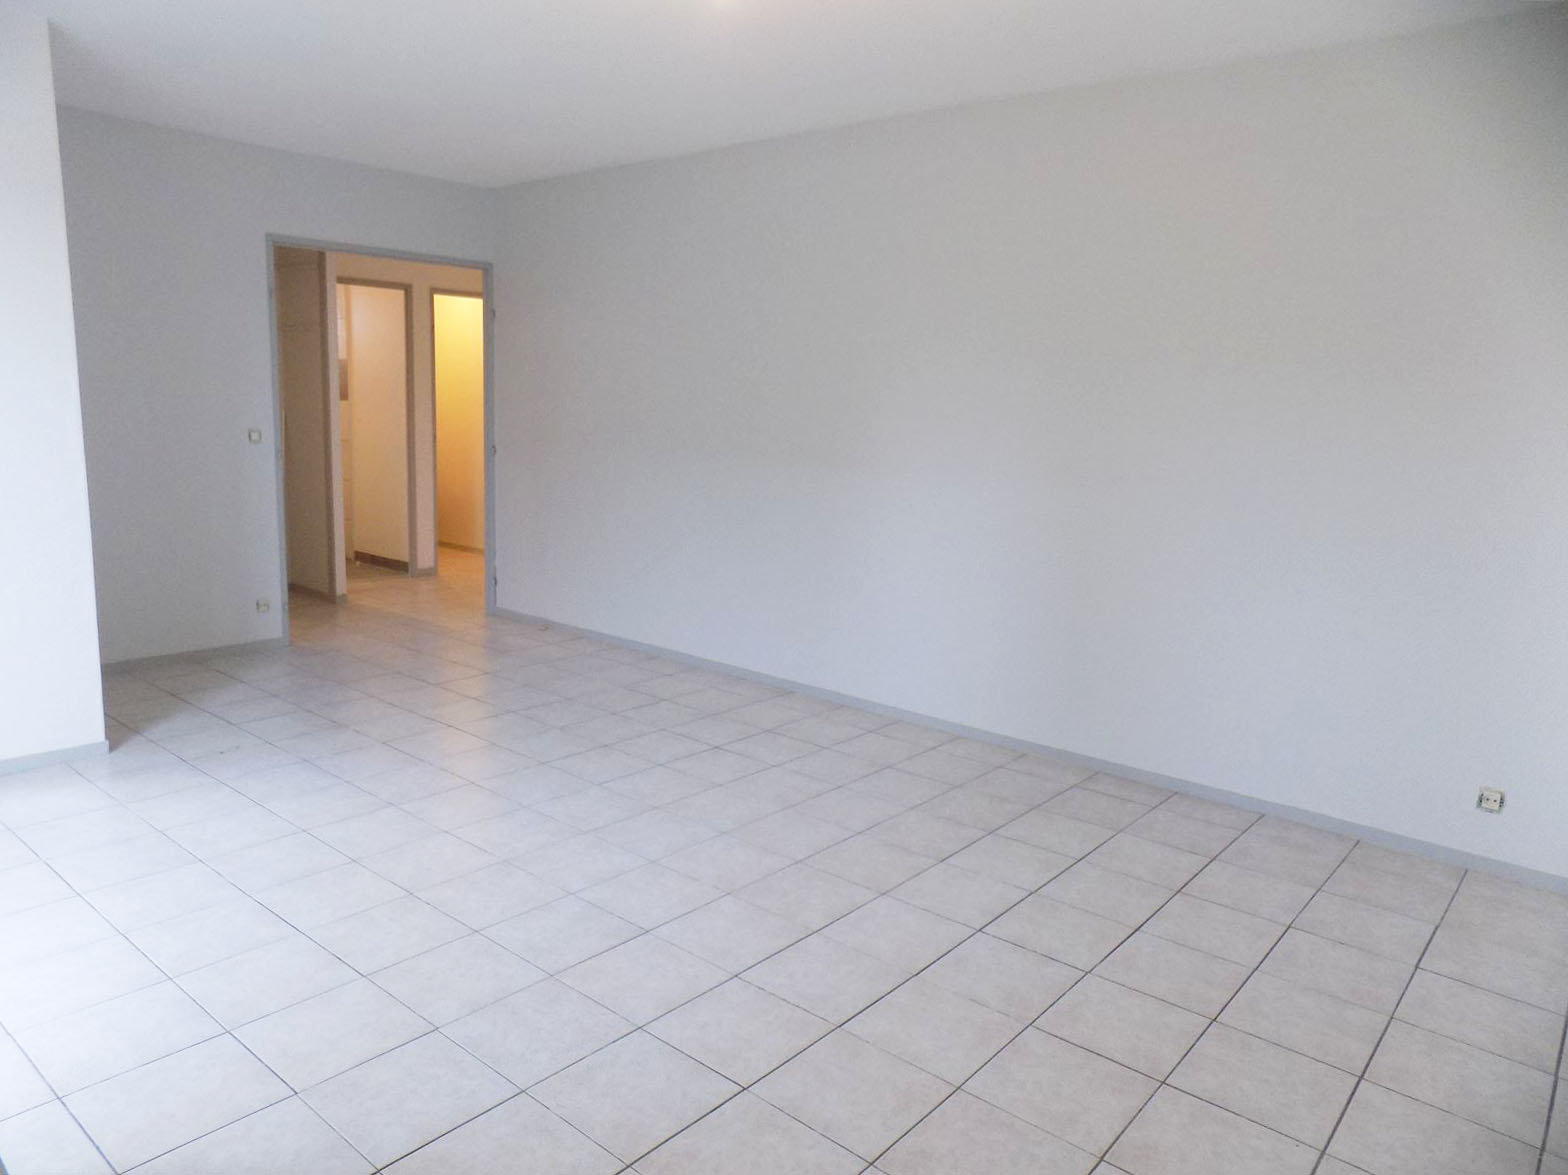 Appartement T2 + PK + CELLIER - 31200 TOULOUSE SEPT DENIERS